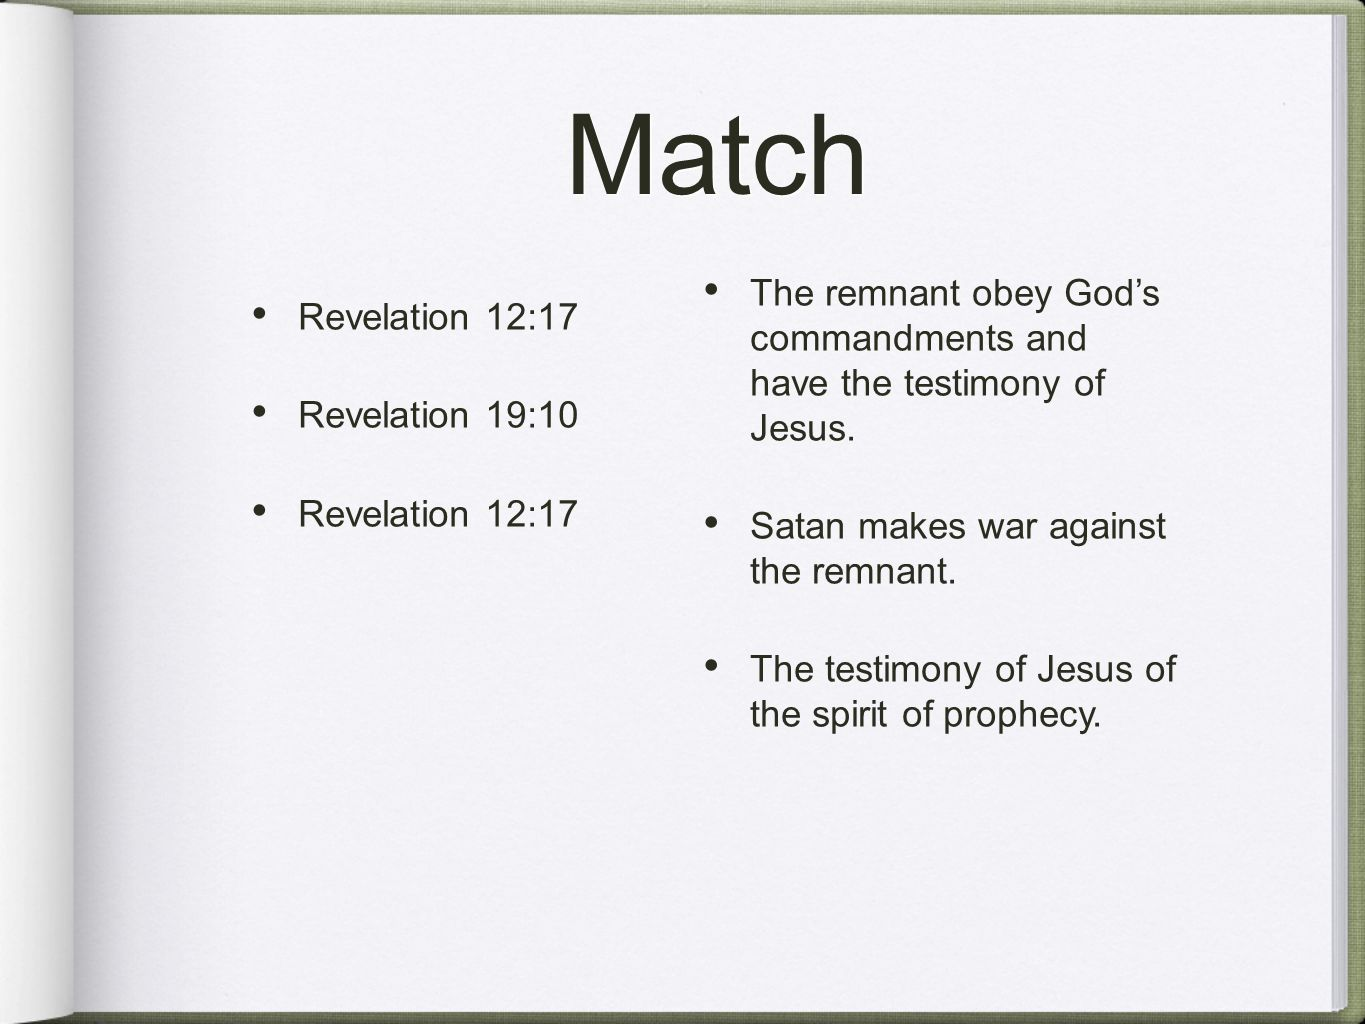 Match Revelation 12:17 Revelation 19:10 Revelation 12:17 The remnant obey God's commandments and have the testimony of Jesus. Satan makes war against